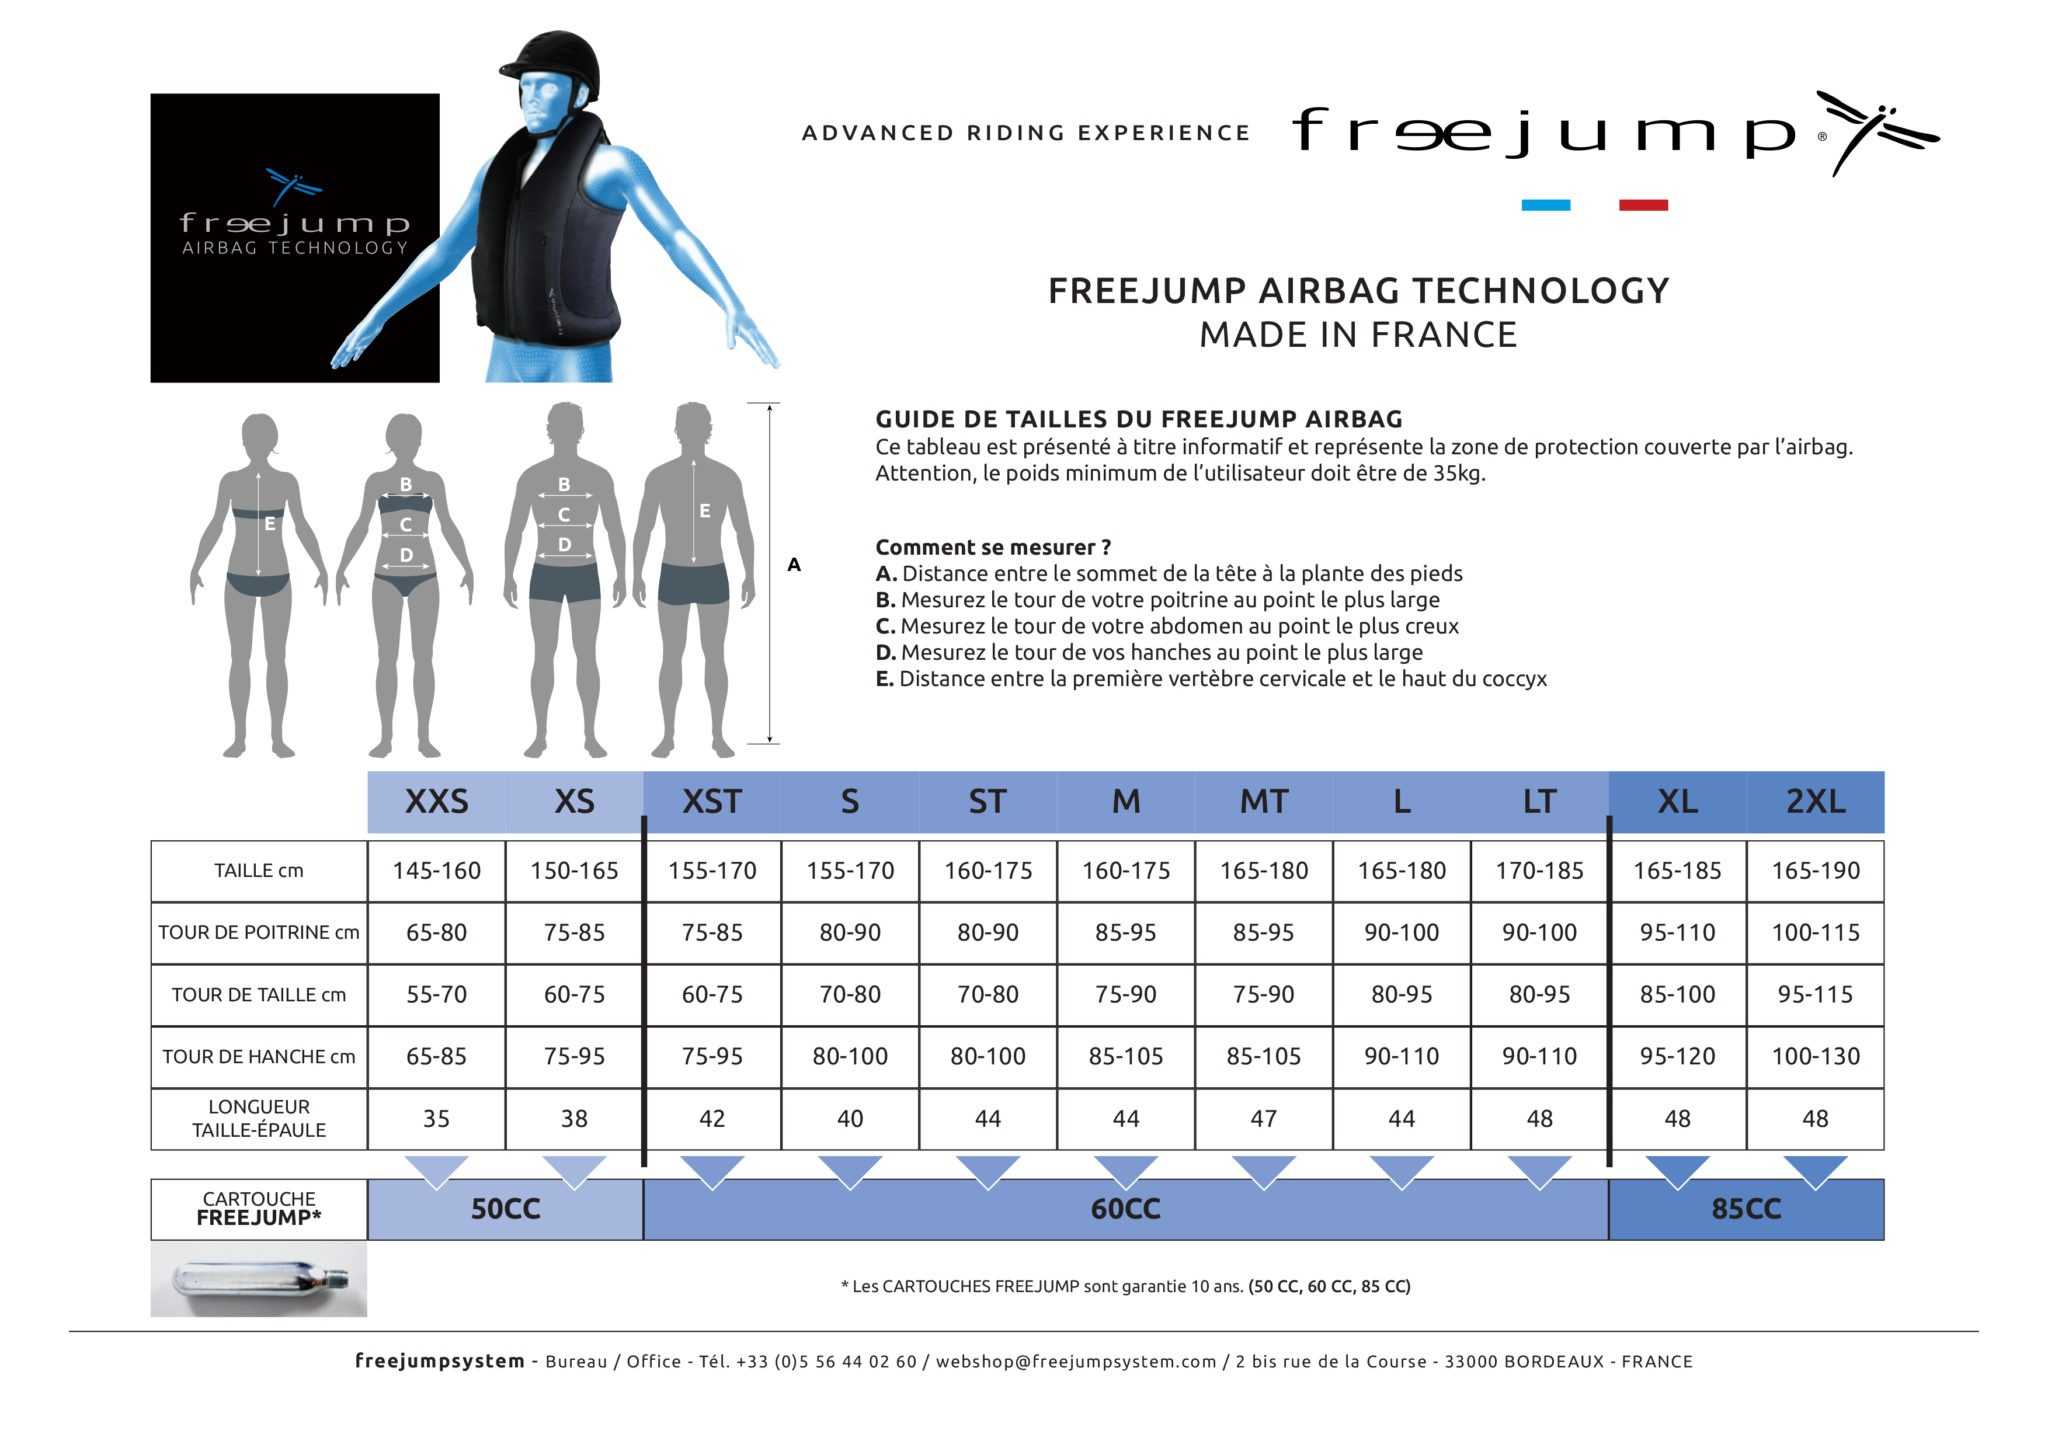 guide des tailles gilet airbag Freejump - Equestra